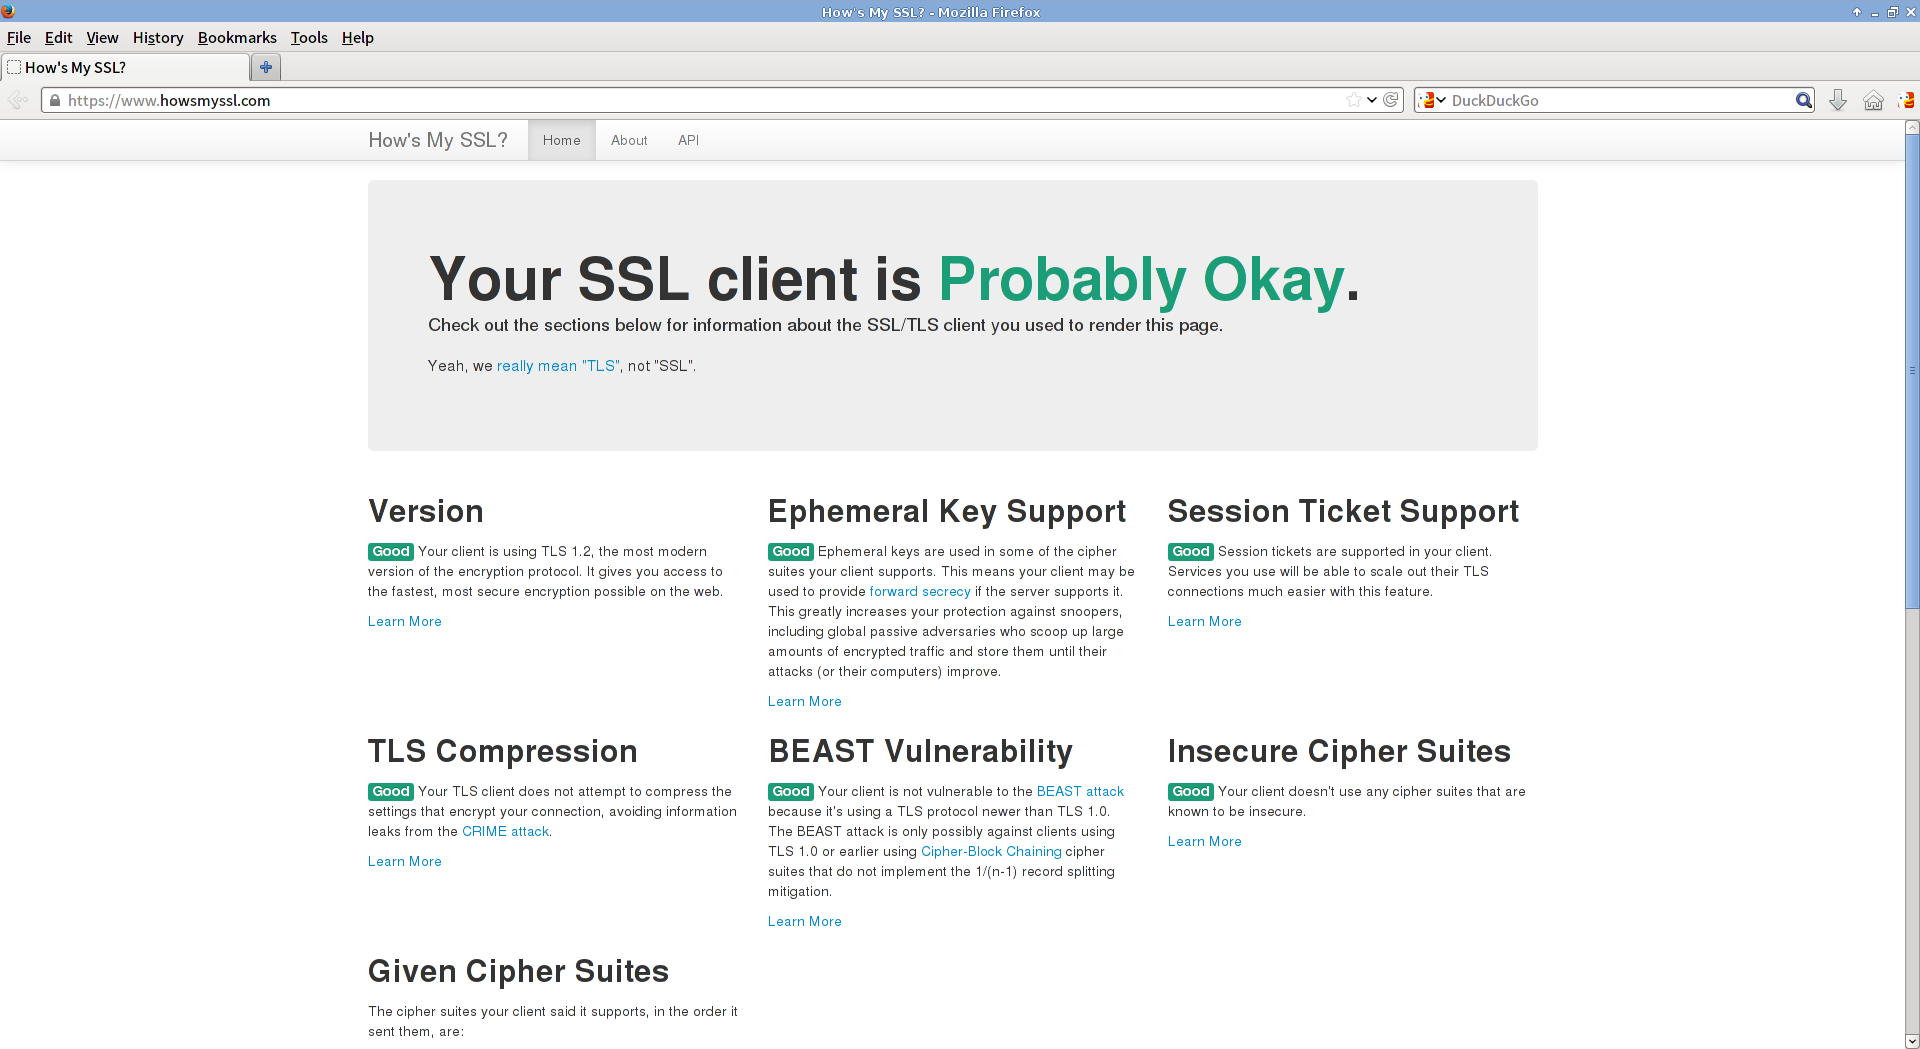 howsmyssl.com loaded in Firefox 26